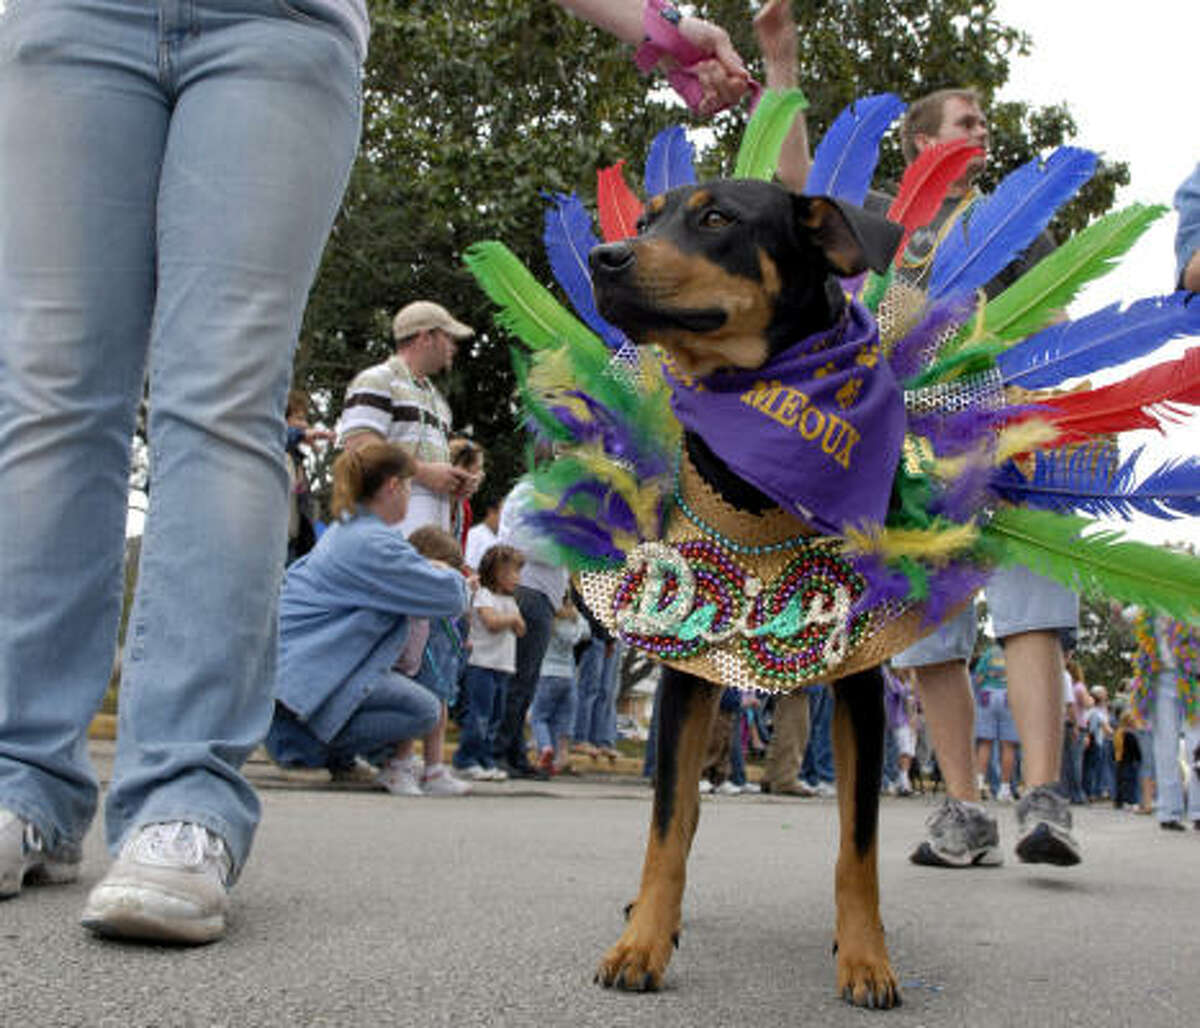 Daisy dressed up as an Indian for the Krewe of Barkus and Meoux Mardi Gras Parade last year.